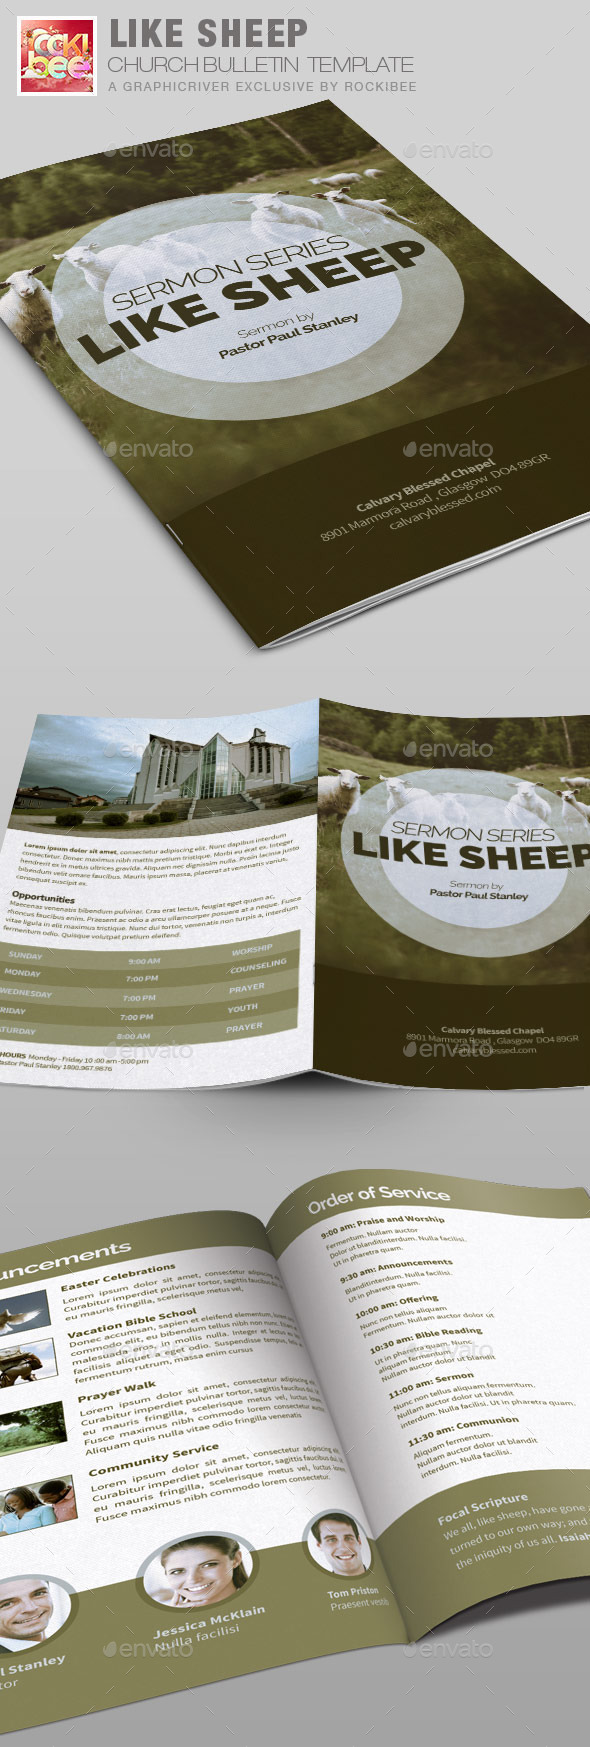 Like Sheep Church Bulletin Template - Informational Brochures